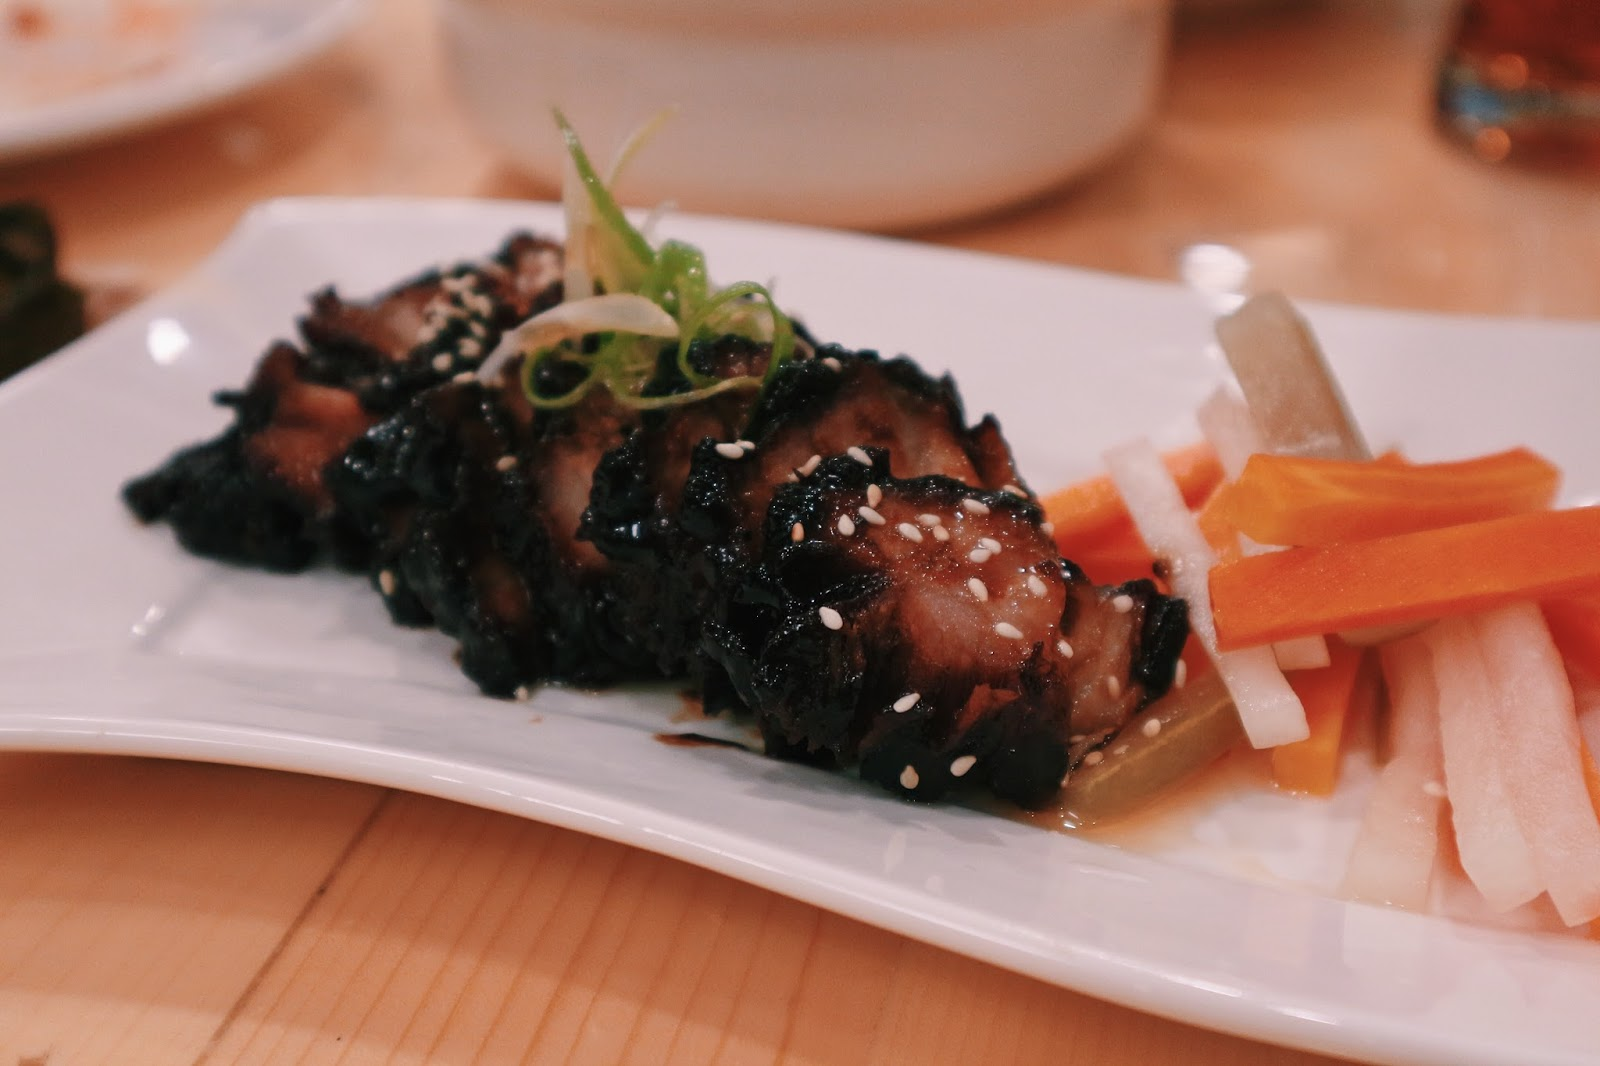 Flavors of Asia Davao - Sticky Pork Riblets with Lychee